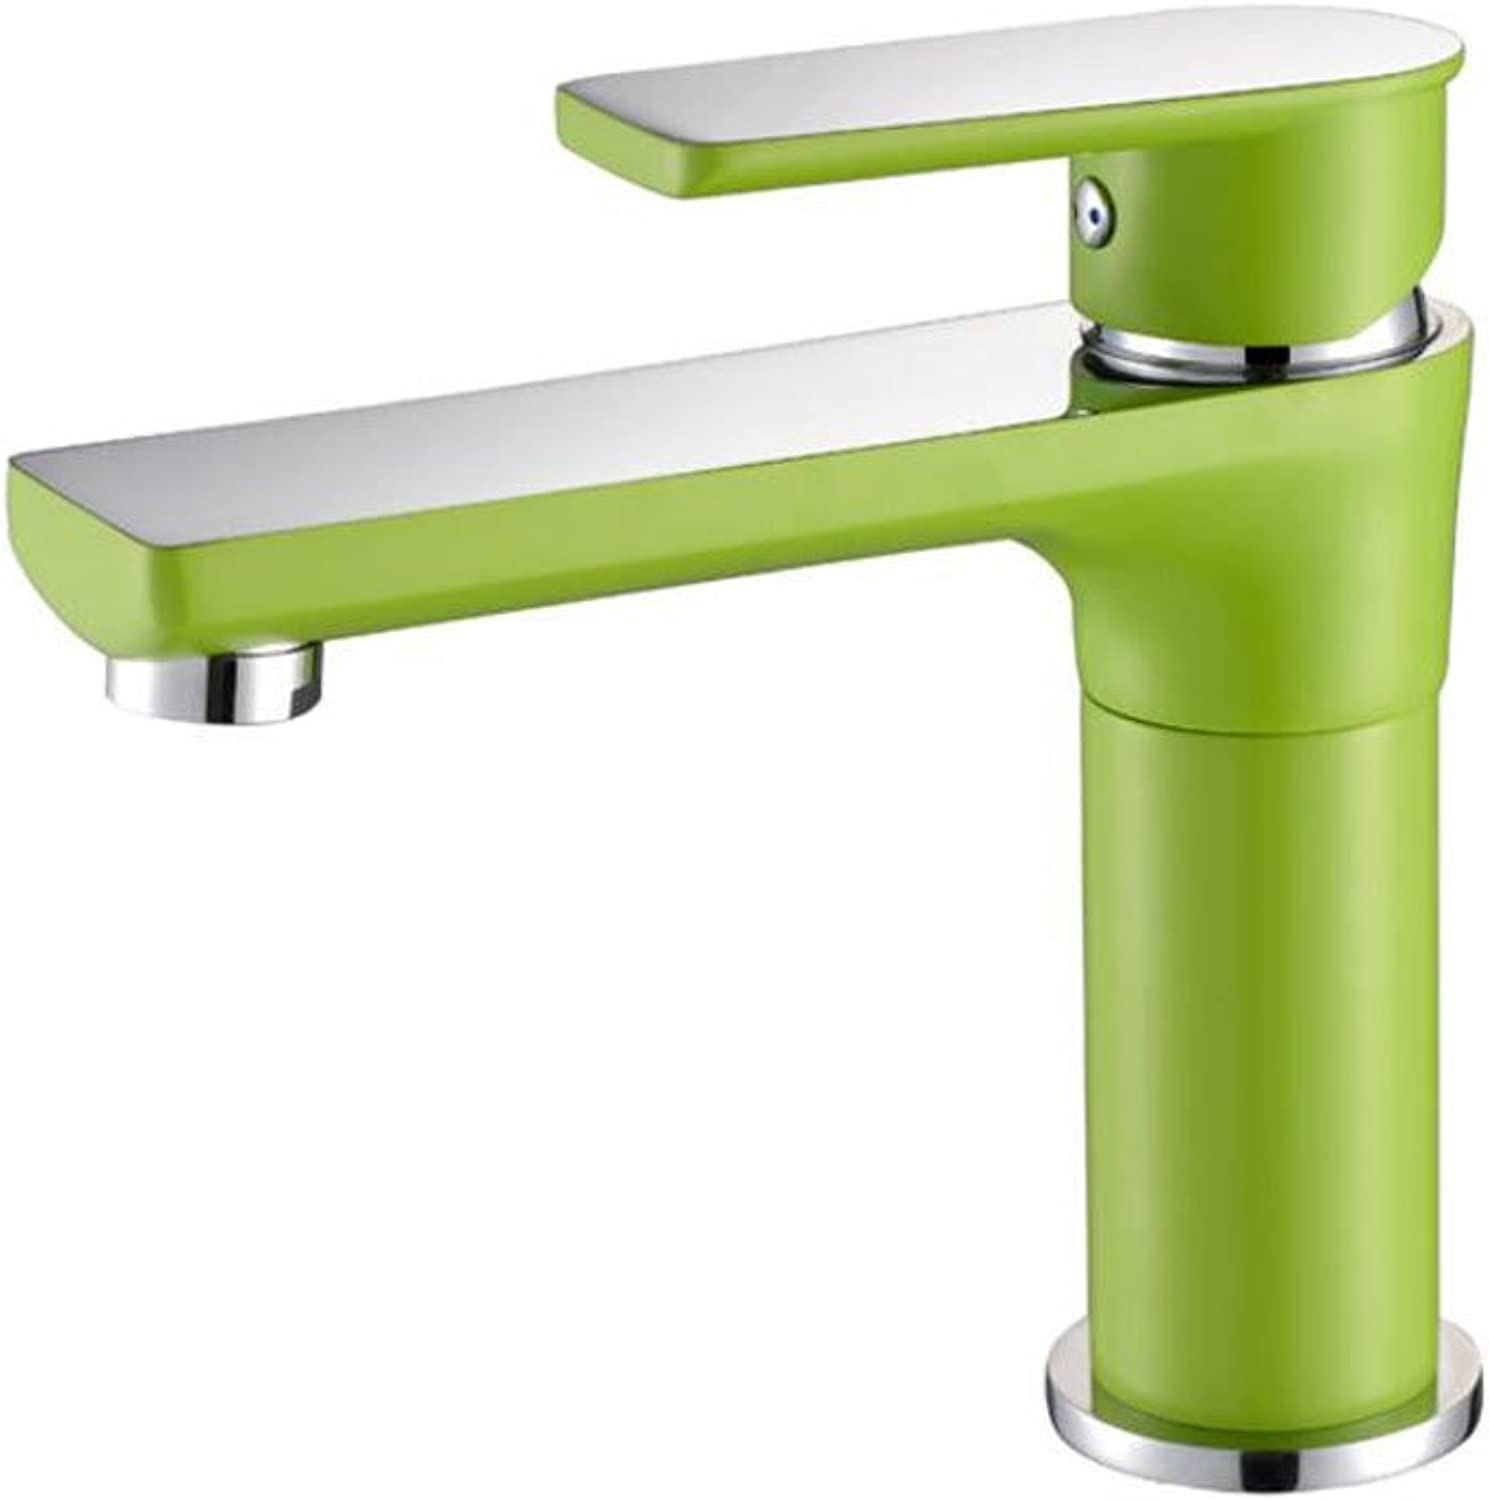 Rollsnownow Creative green paint gold-plated faucet, bathroom sink faucet, single-handle single hole